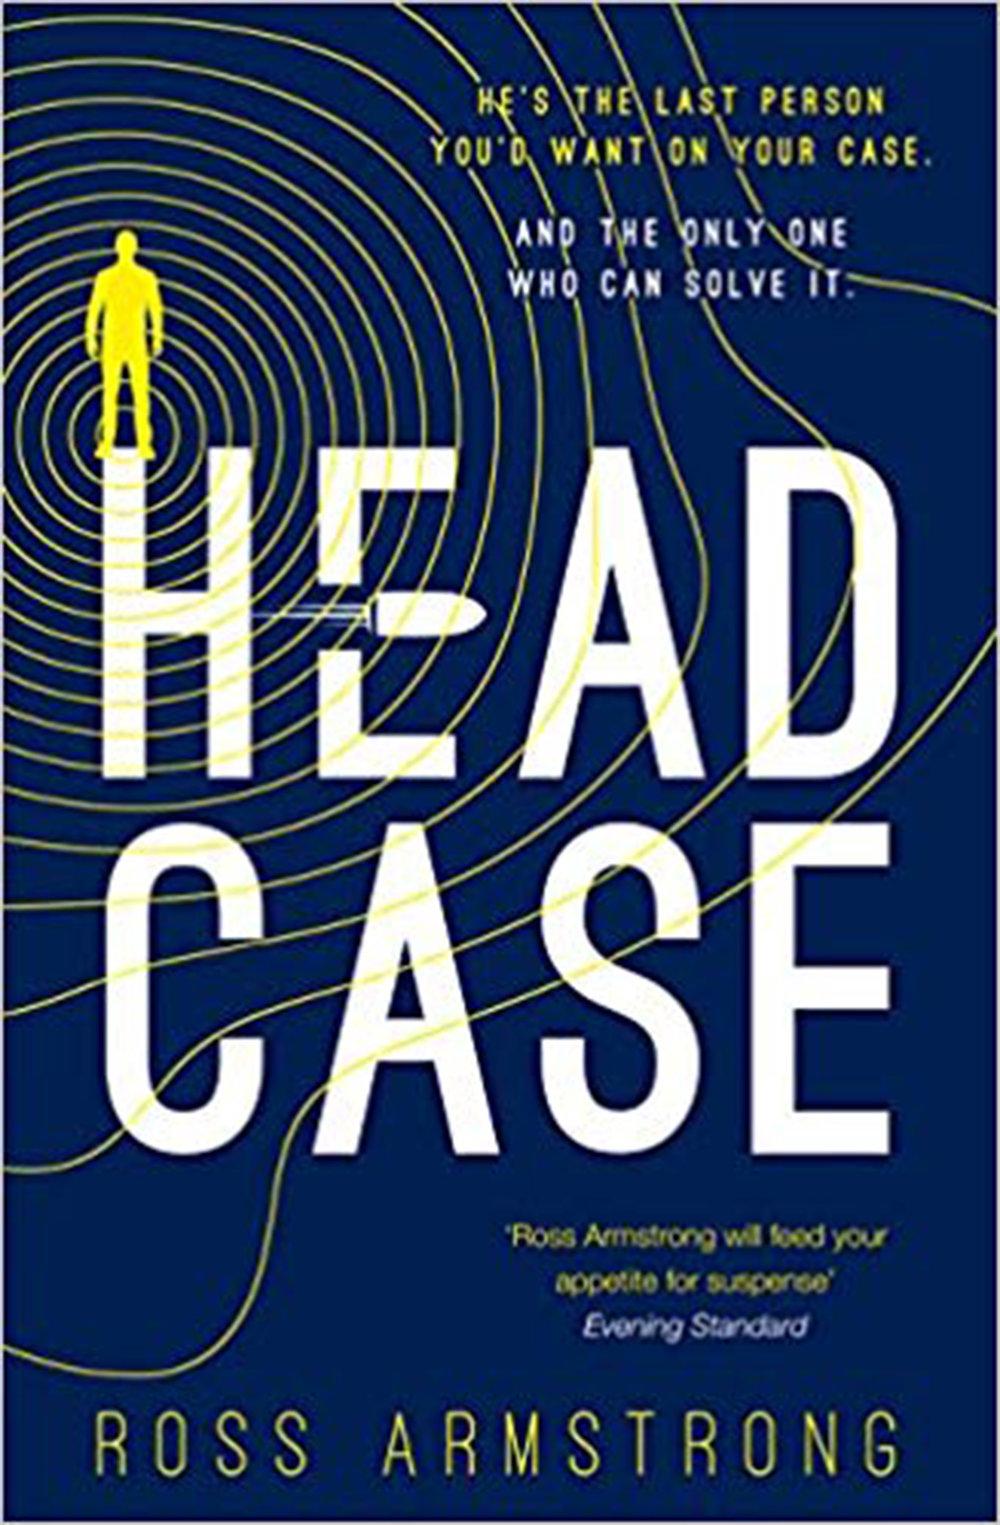 Head Case - by Ross Armstrong